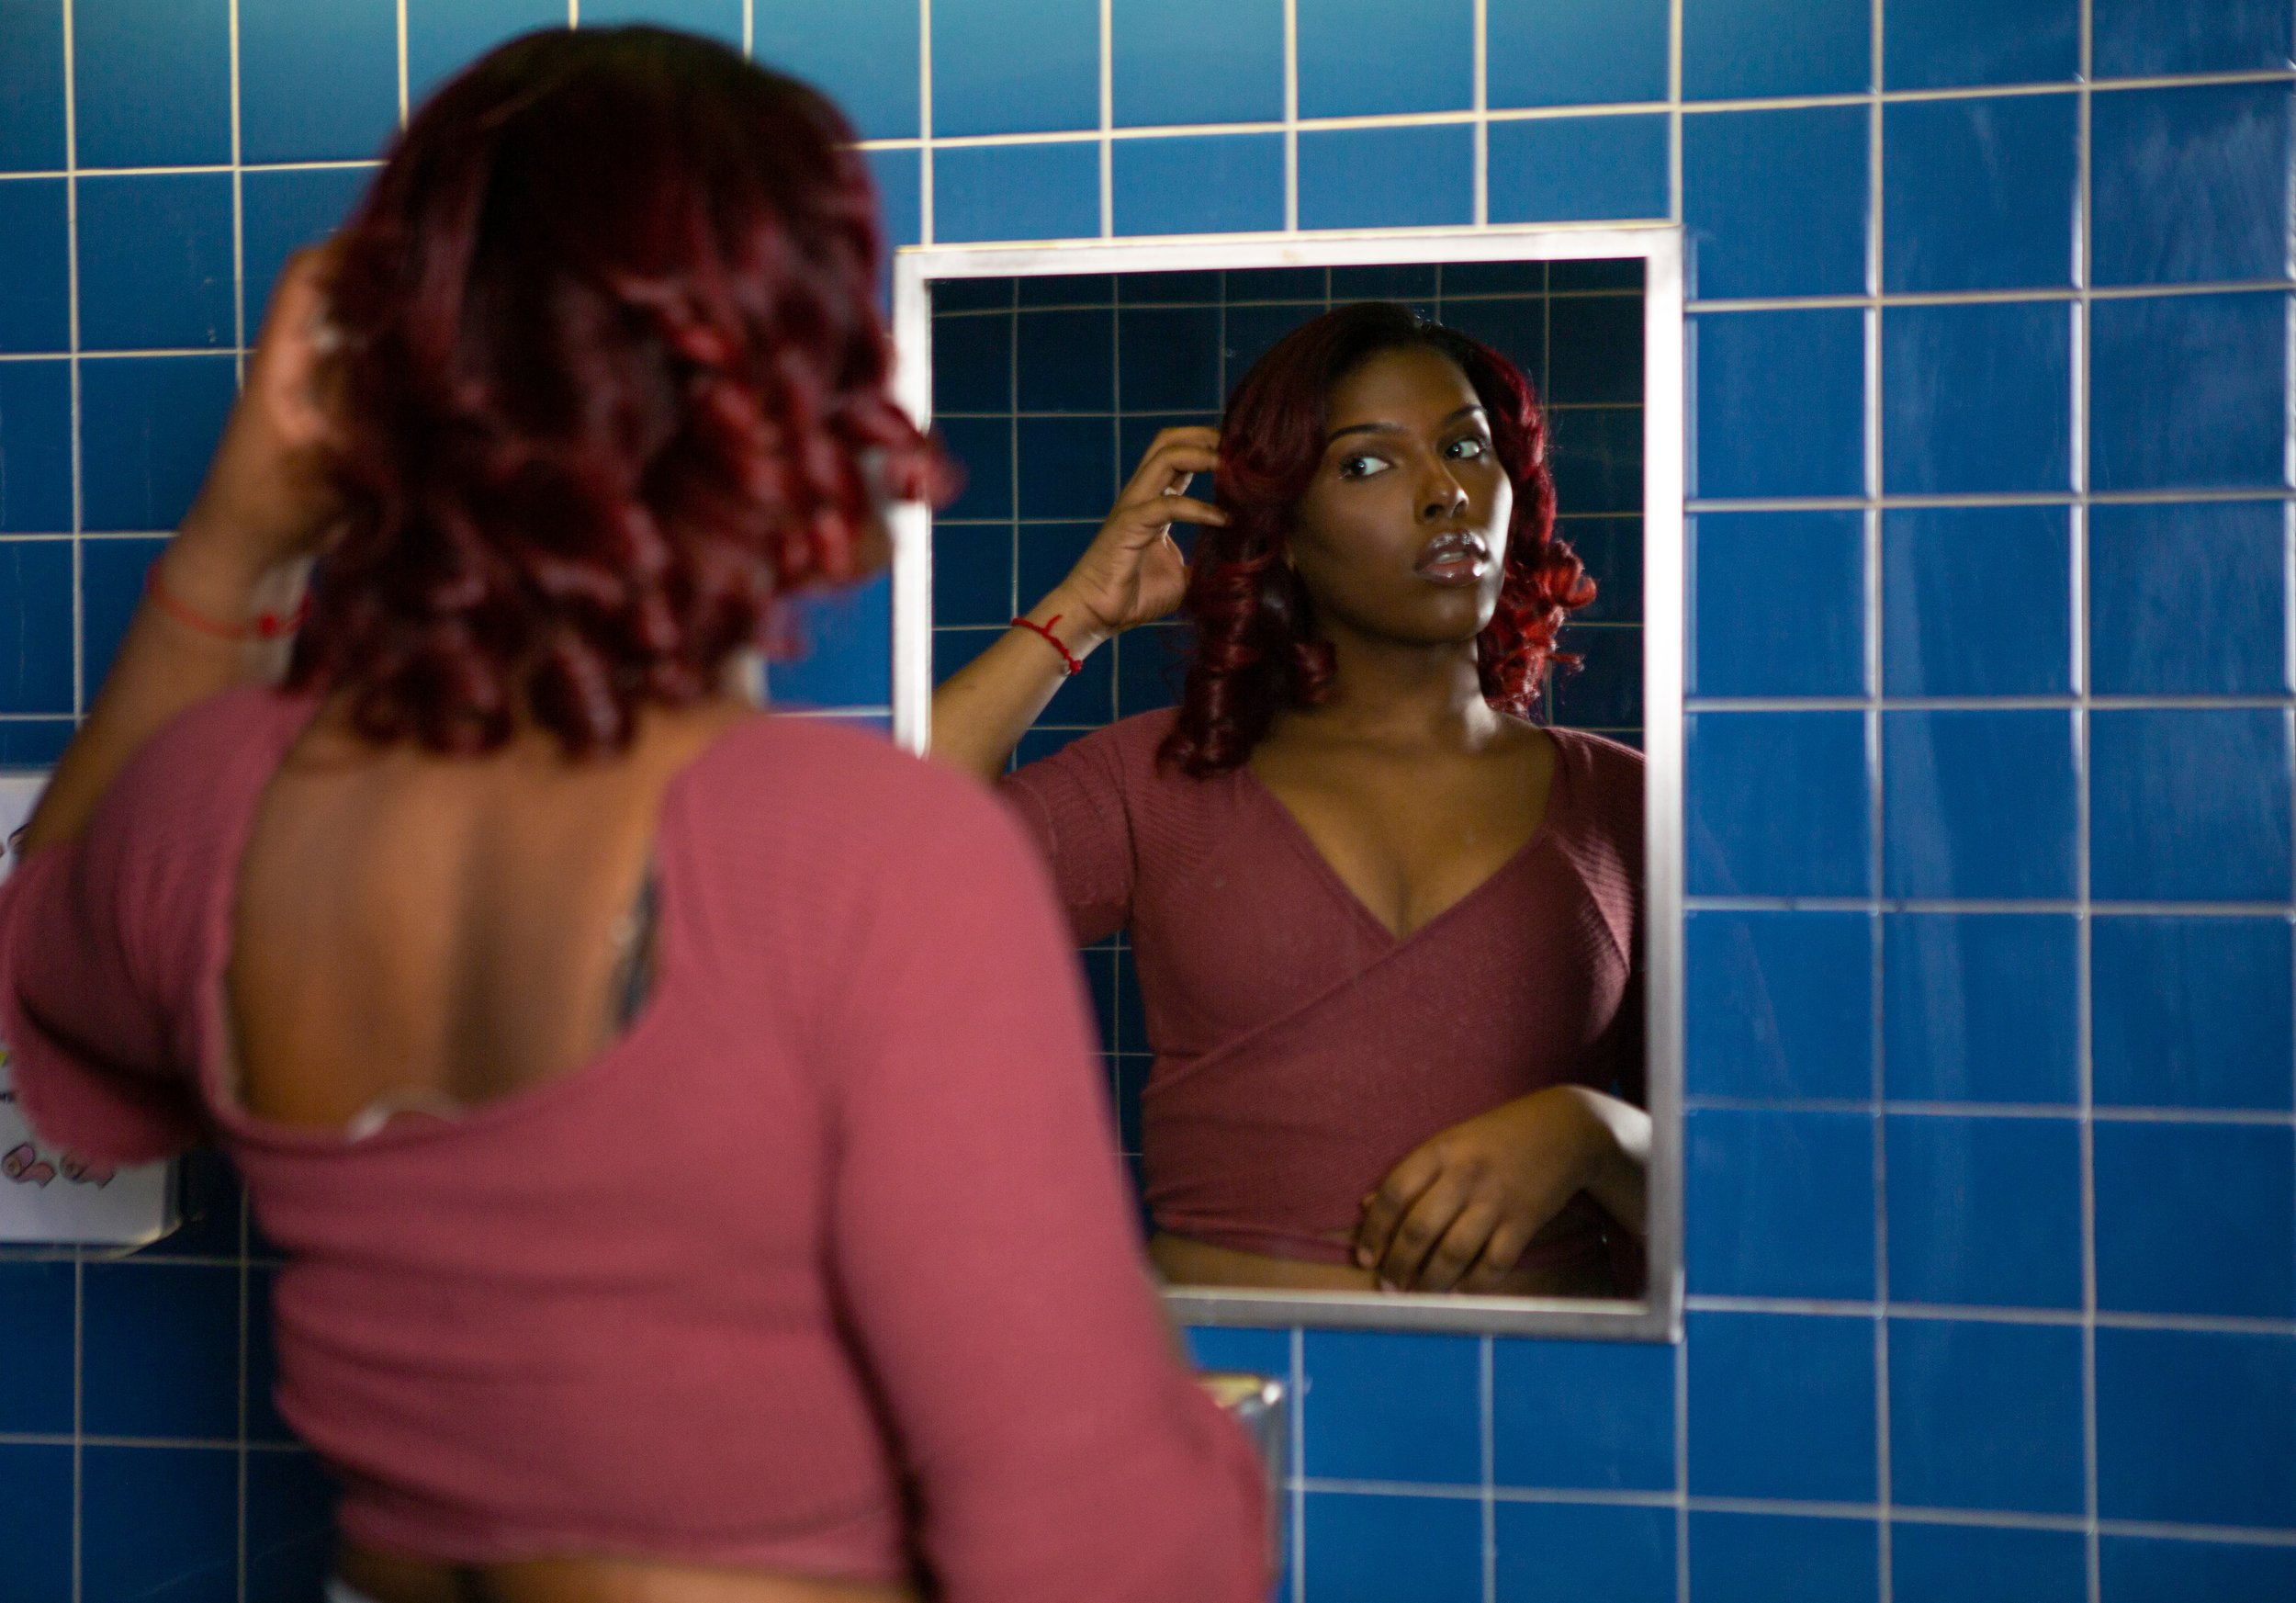 A young transgender woman looking in a bathroom mirror (1).jpg